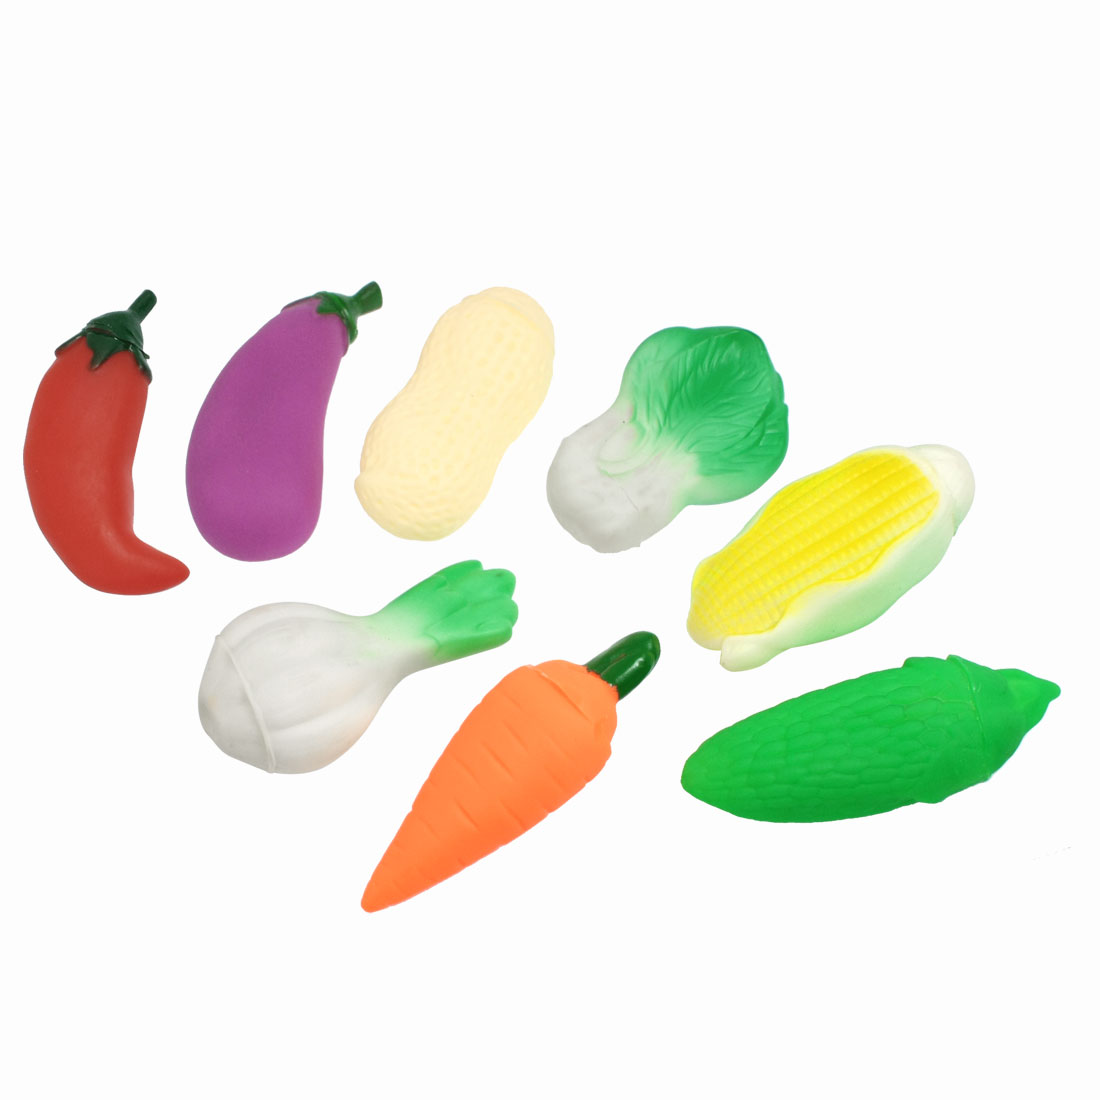 8 Pcs Plastic Faux Vegetable Kitchen Pretend Play Squeeze Toys for Child